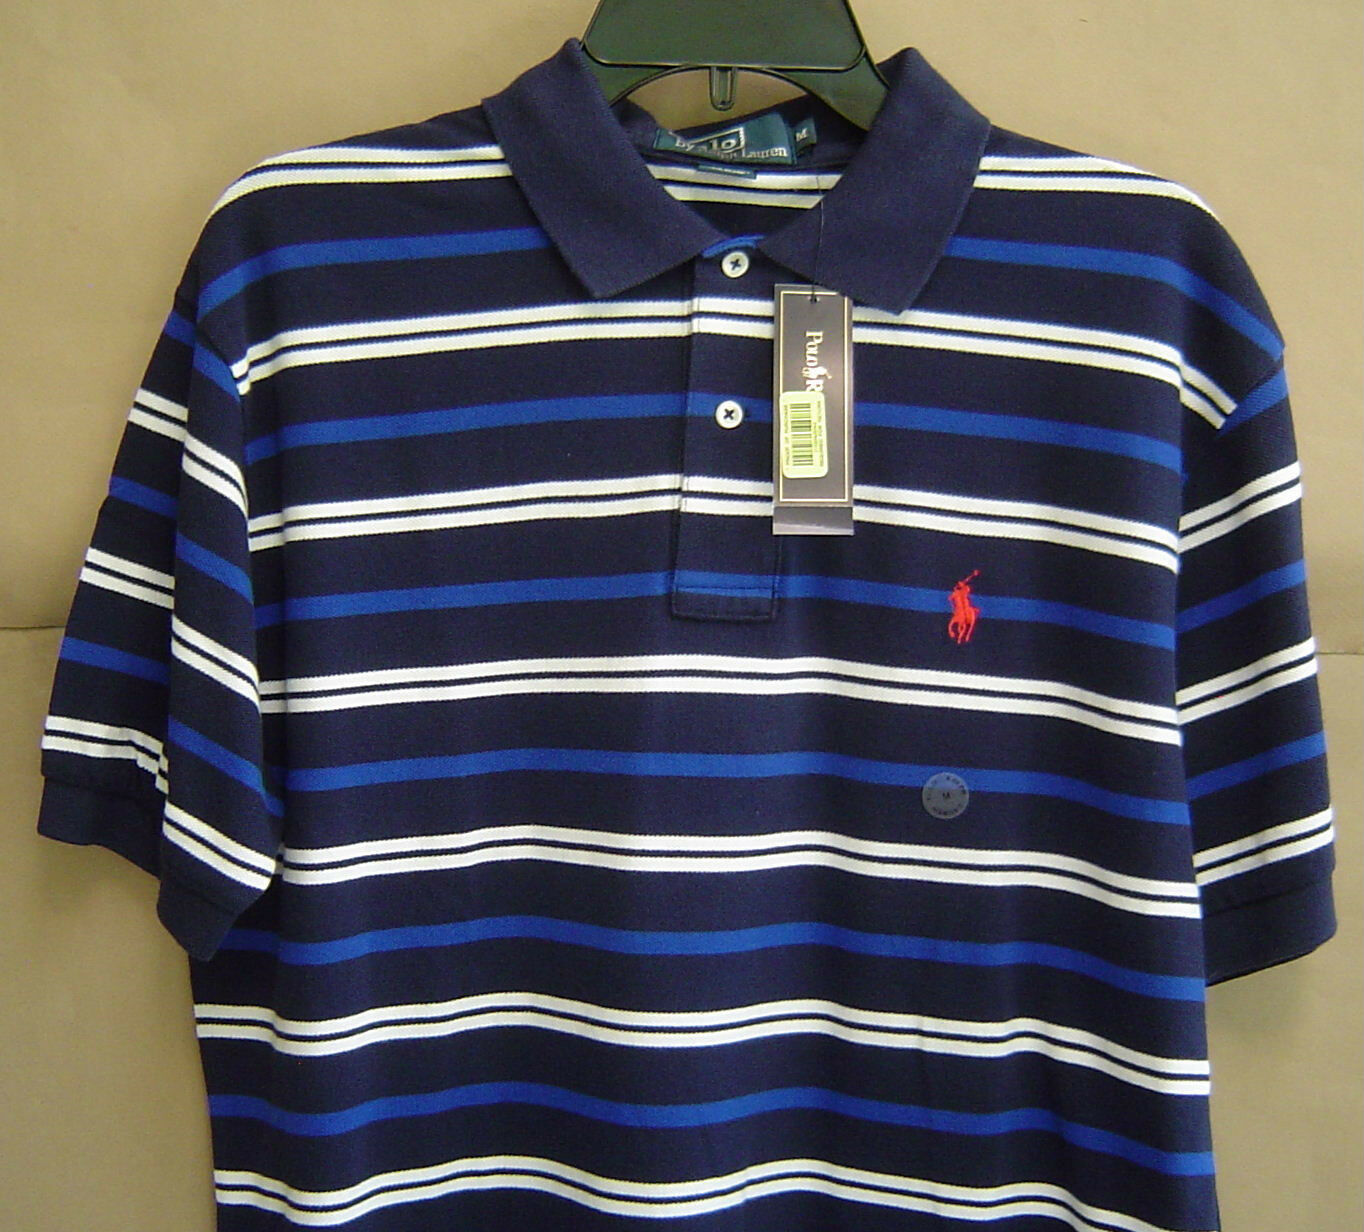 NWT  POLO RALPH LAUREN Mens M Classic Fit STRIPED MESH SHIRT Navy 0480796